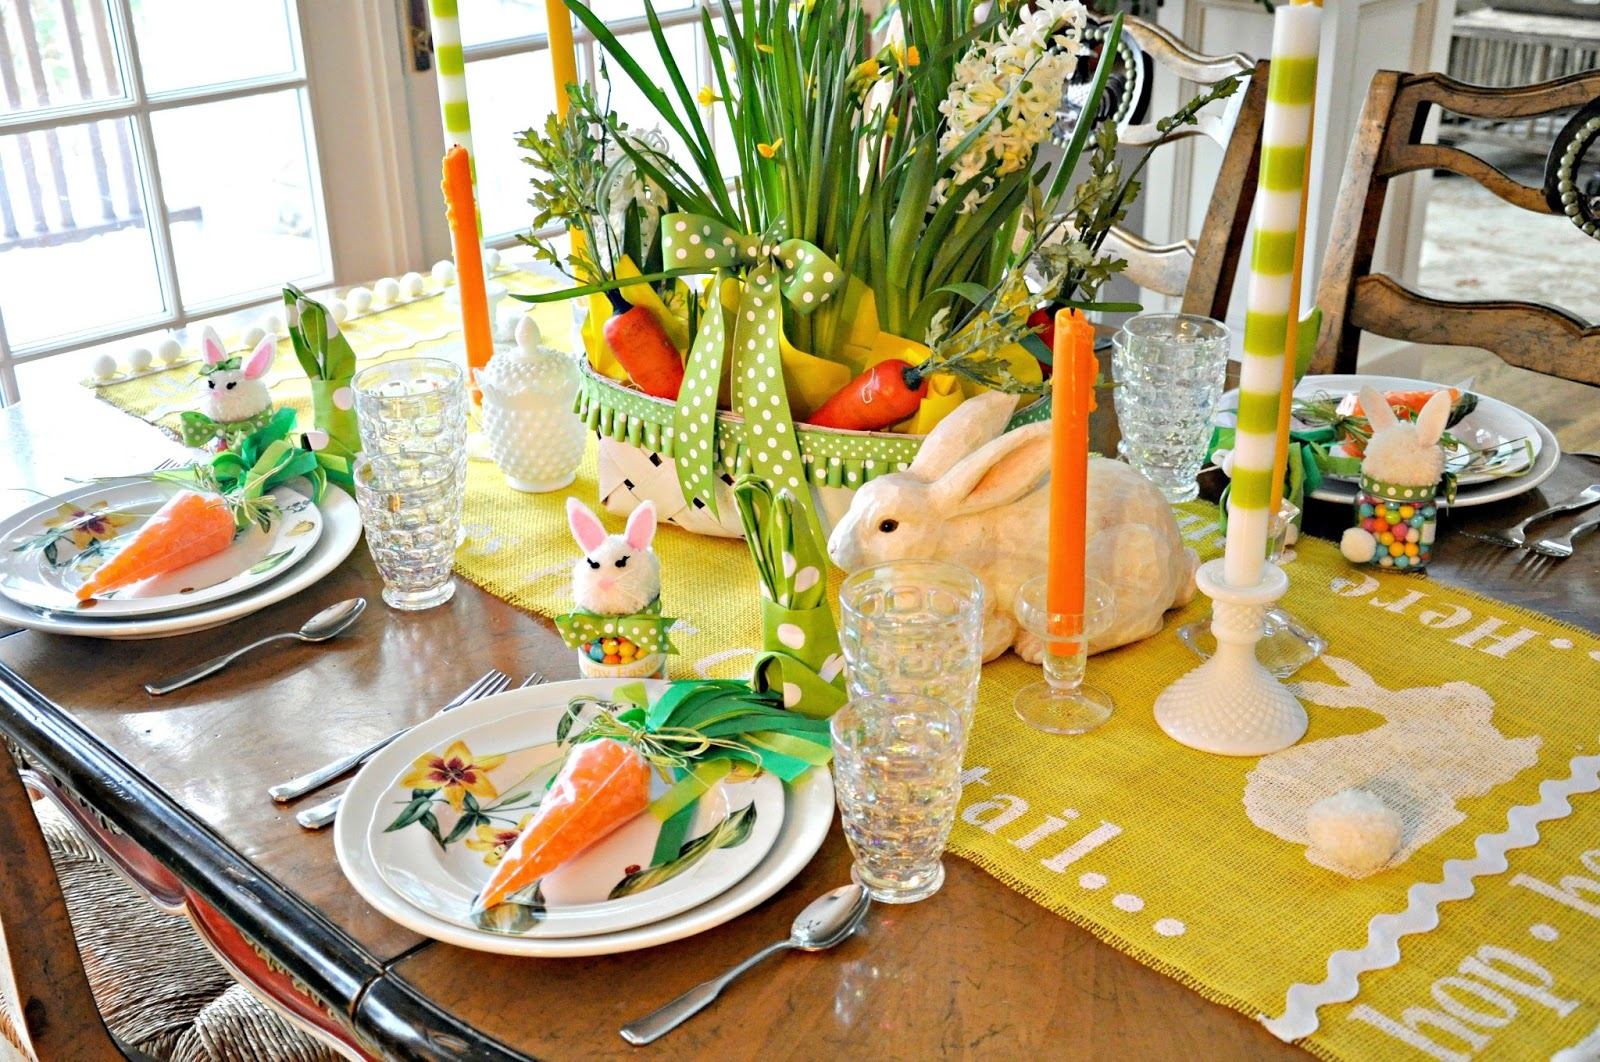 serendipity refined blog easter table setting. Black Bedroom Furniture Sets. Home Design Ideas